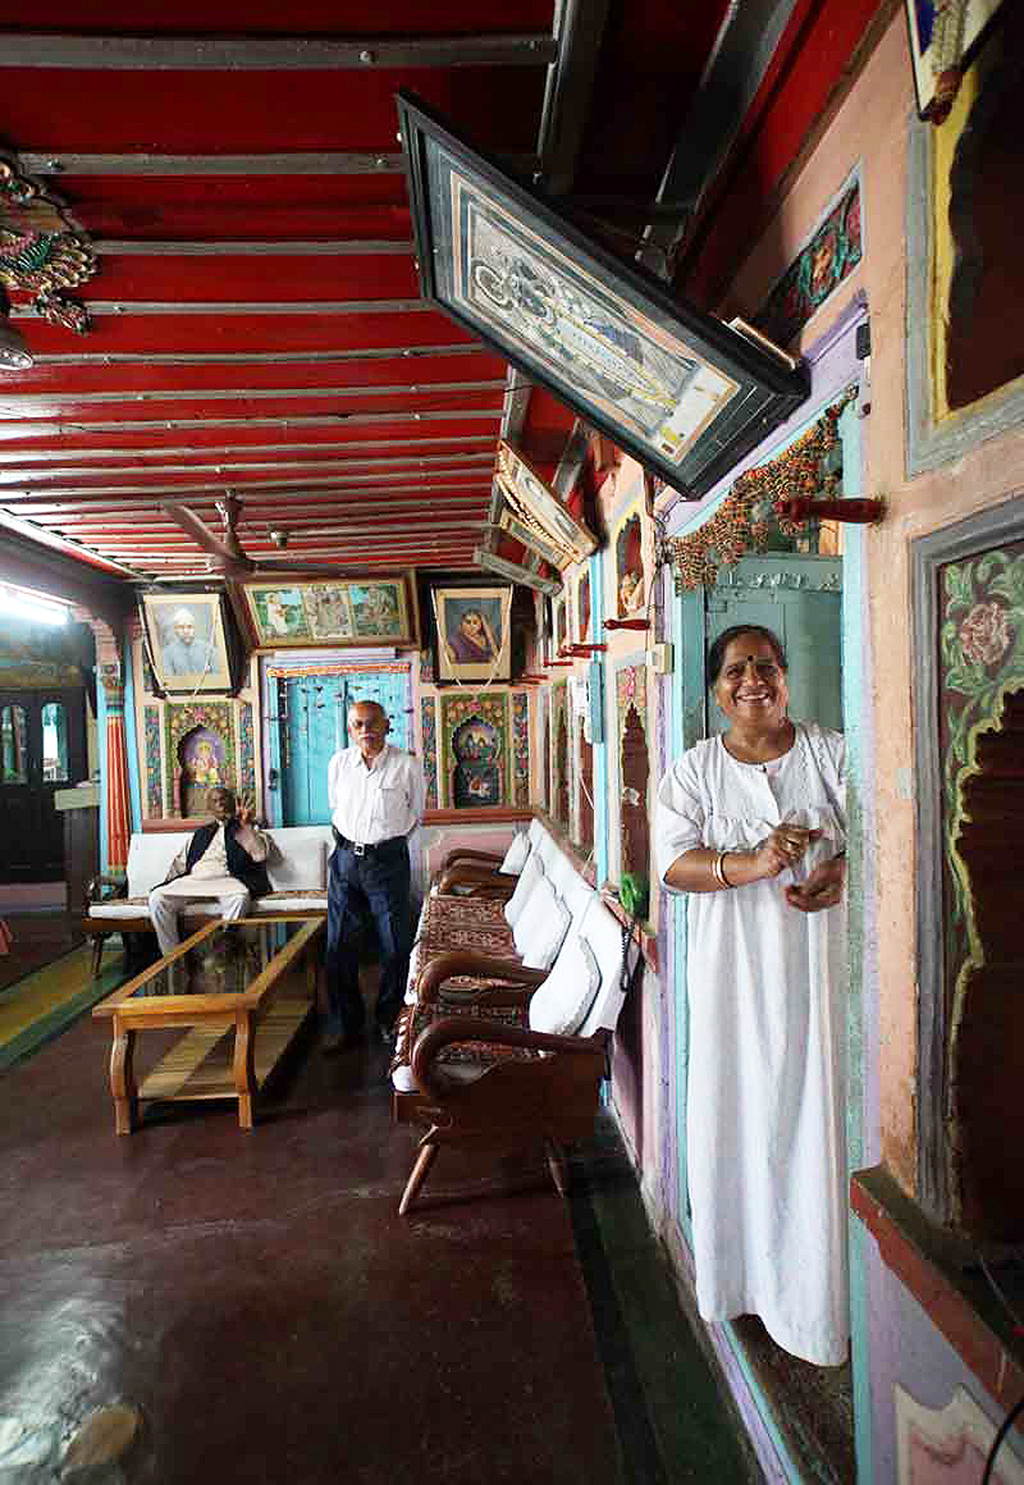 Current residents of the haveli, Virendra Hathiwala who is an agriculturist and paper merchant, and his wife, Sumitra, a corporator in the local municipality, as well as a painter and poet